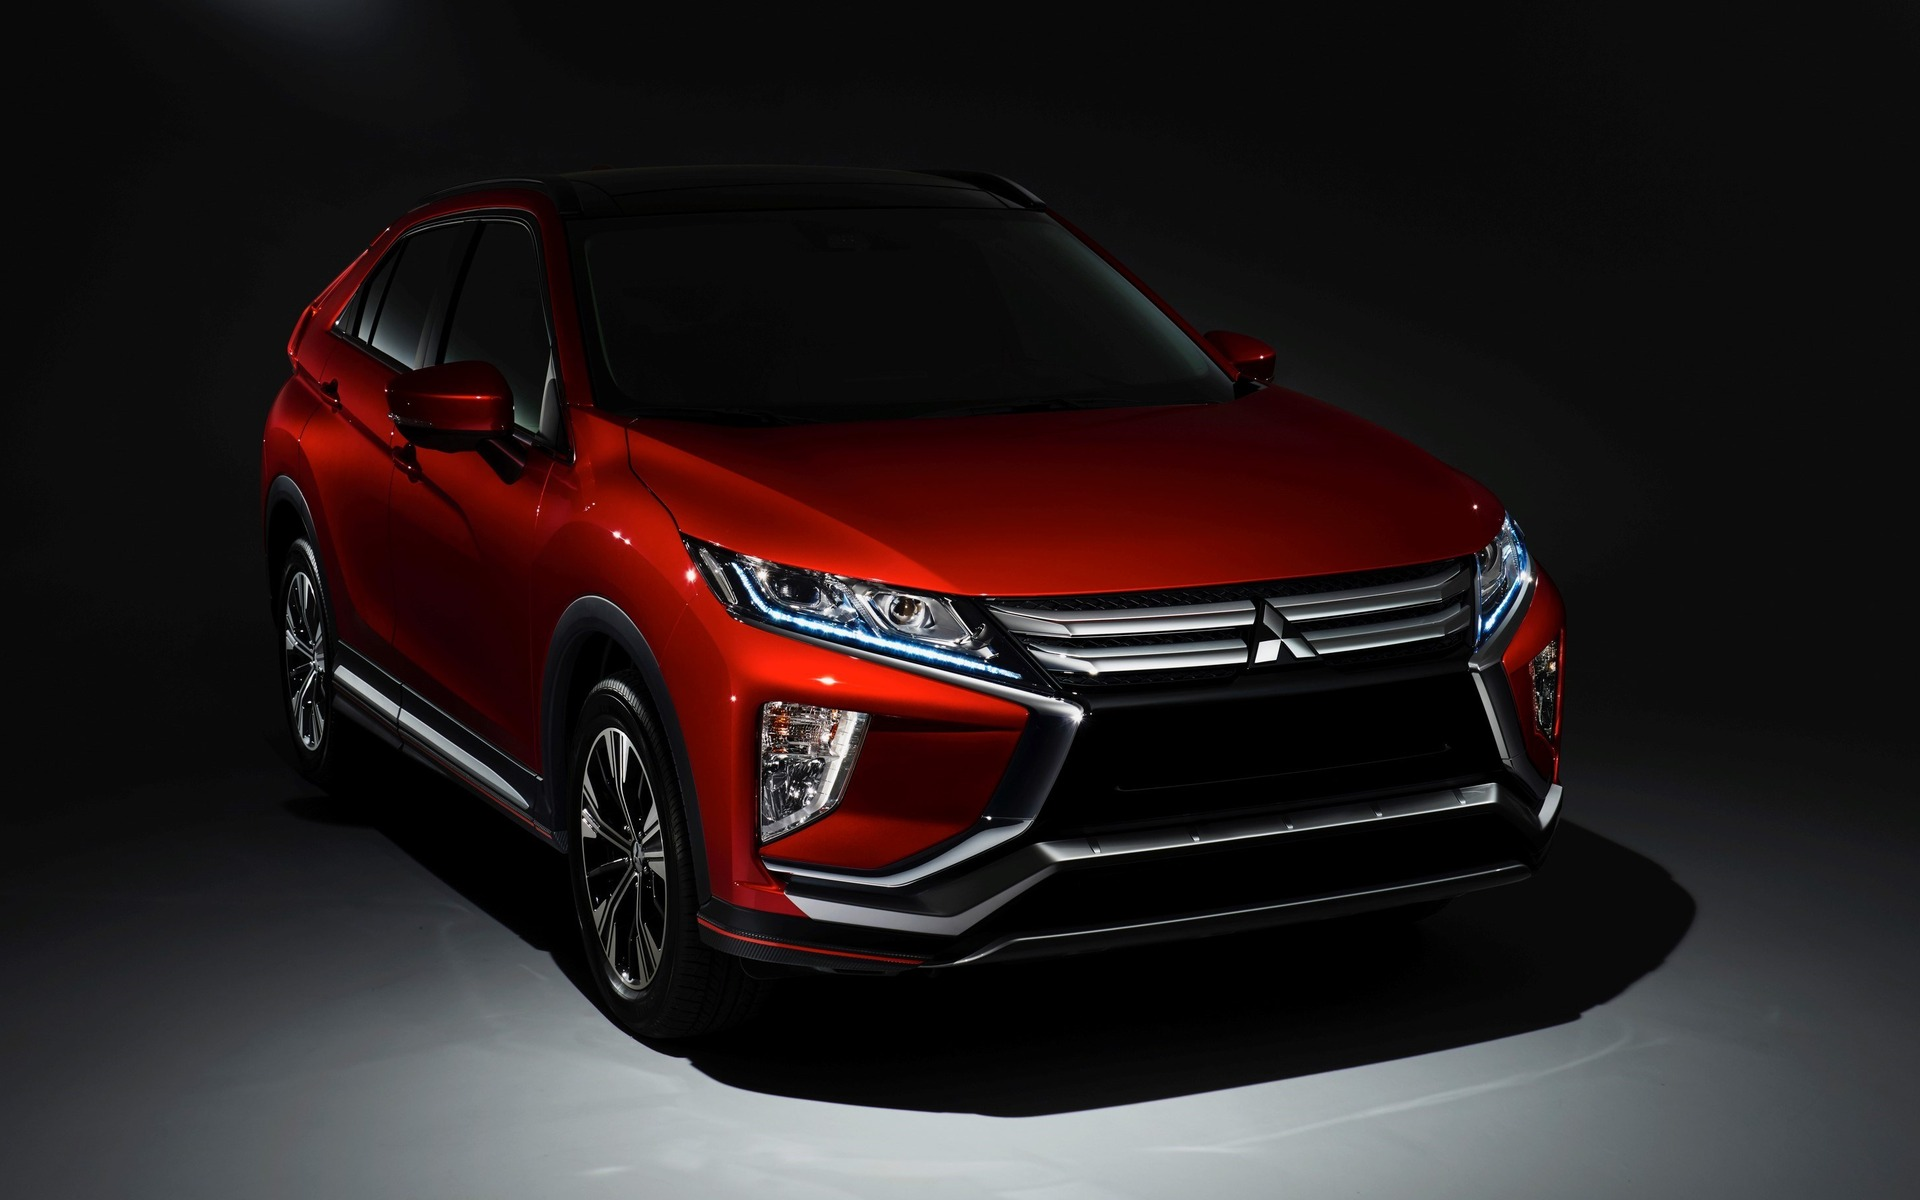 Auto Reviews 2018 >> 2018 Mitsubishi Eclipse Cross: a New SUV for the Brand - 28/56